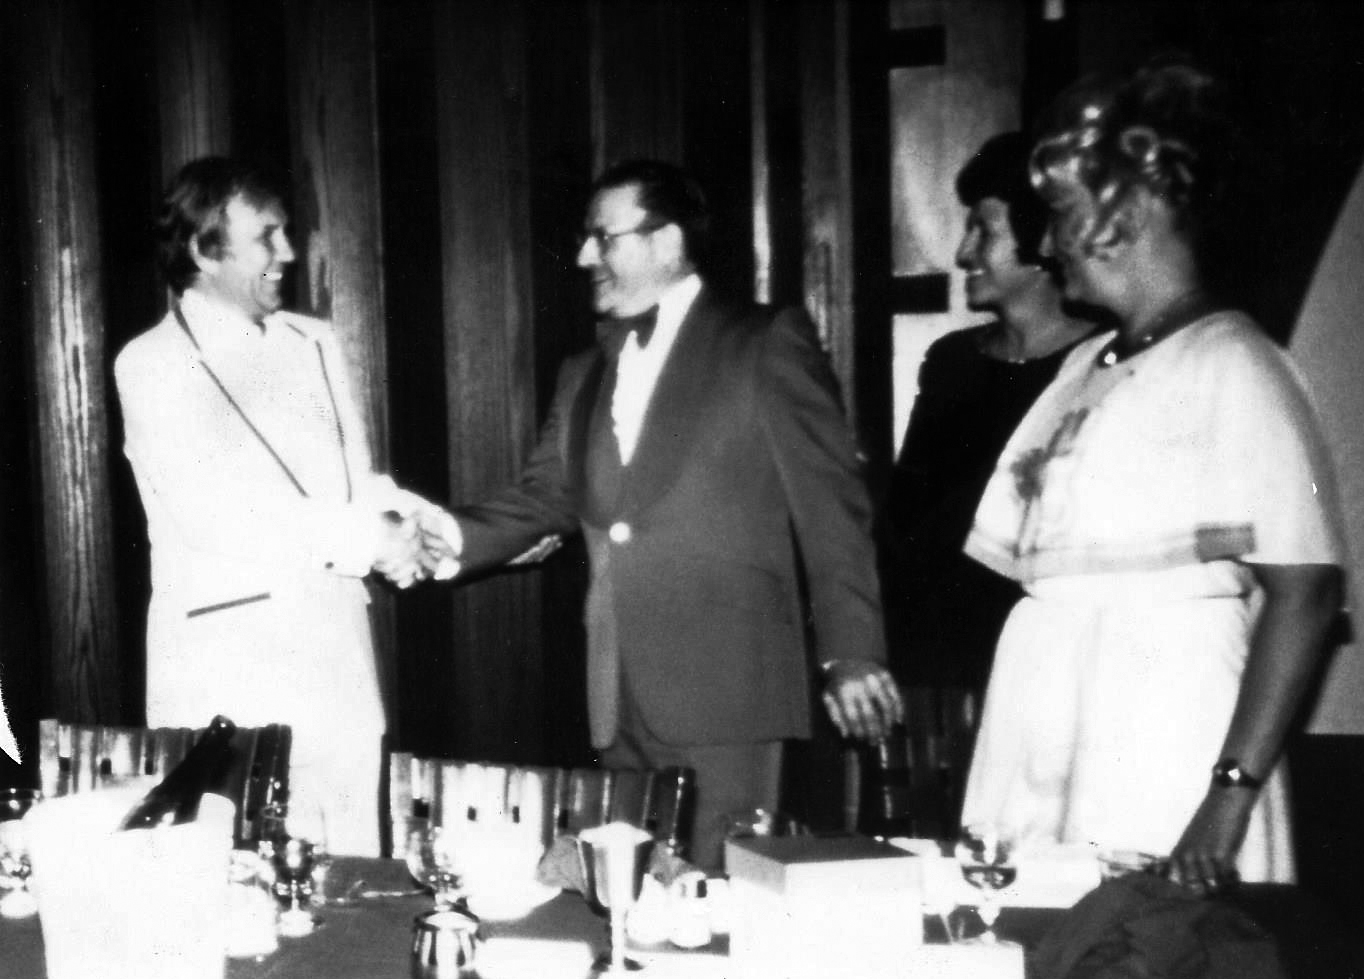 Howie Sr. receiving the honor of Vice President of the NYS Jewelers Association, 1983